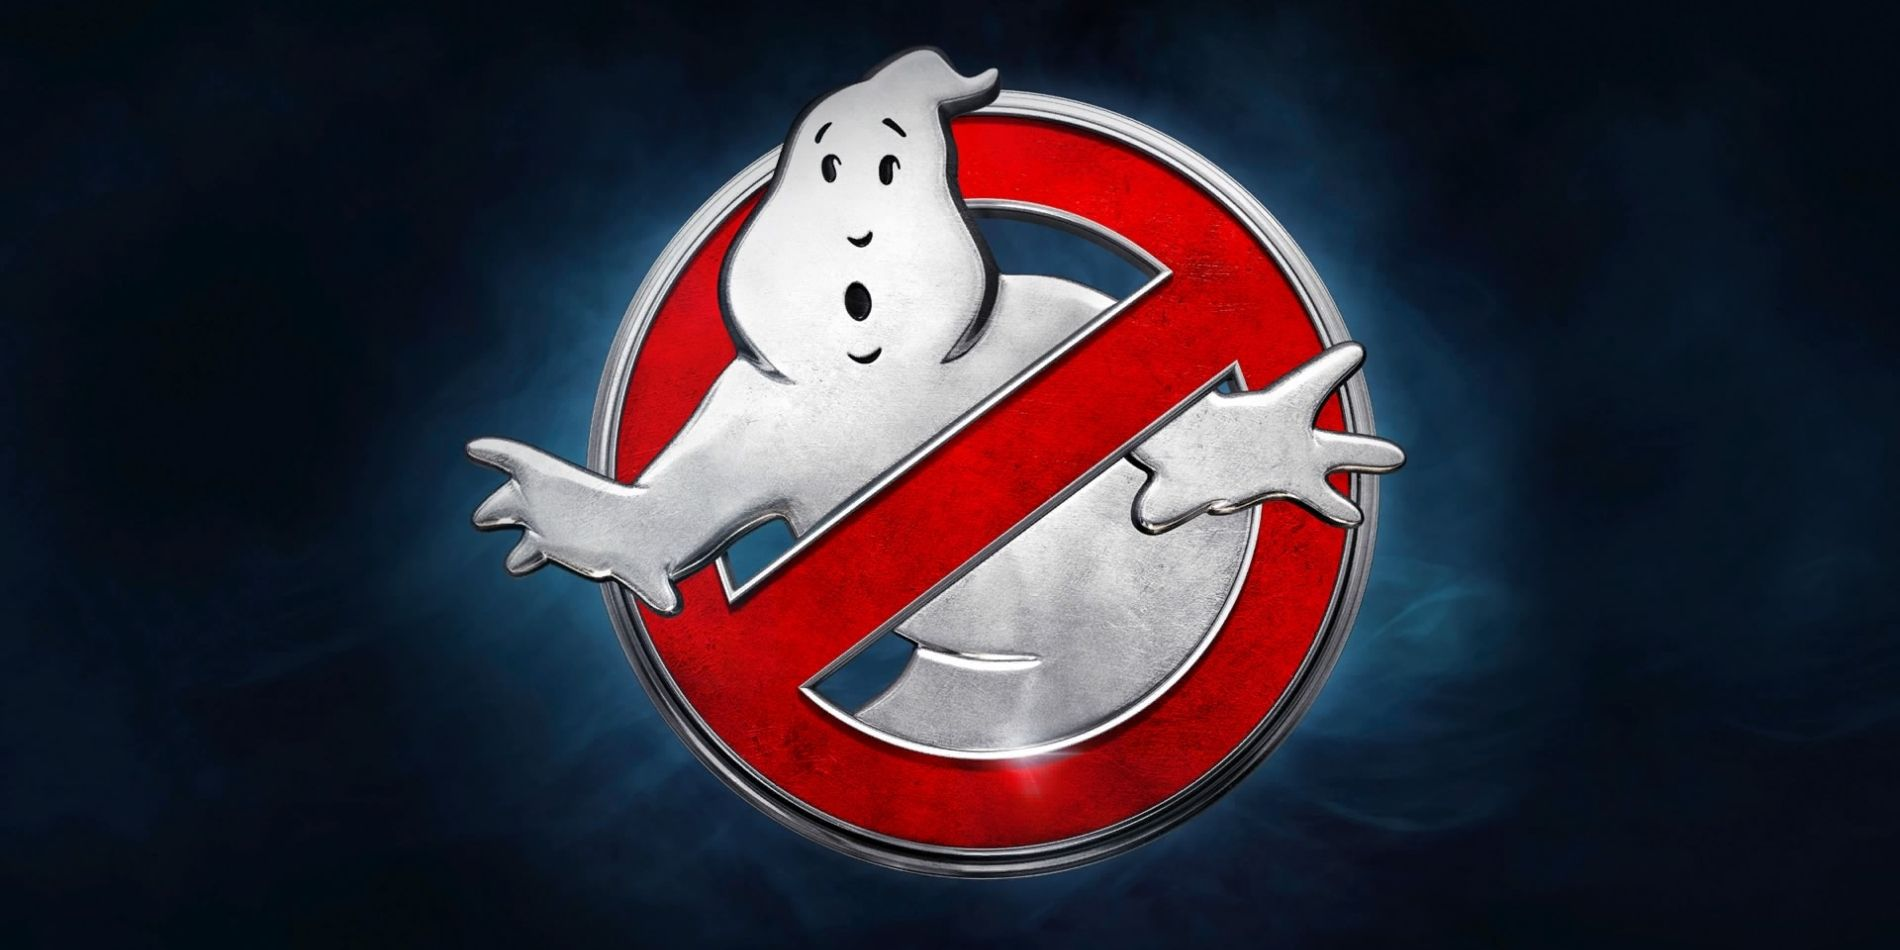 Ghostbusters 2020 Casts Two Newcomers in Mystery Roles